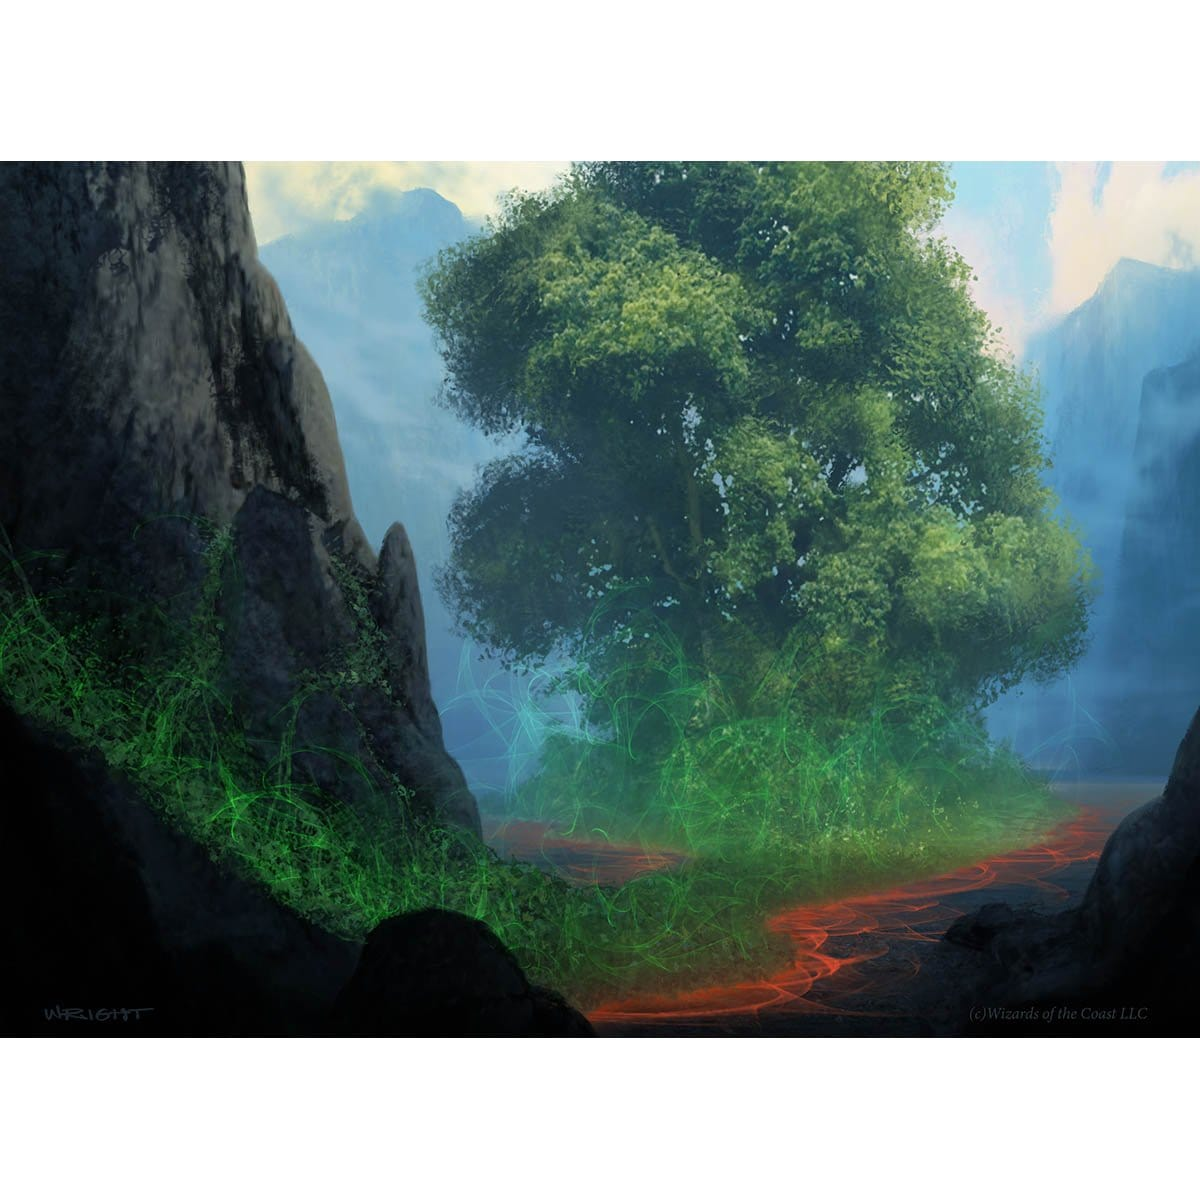 Myriad Landscape Print - Print - Original Magic Art - Accessories for Magic the Gathering and other card games